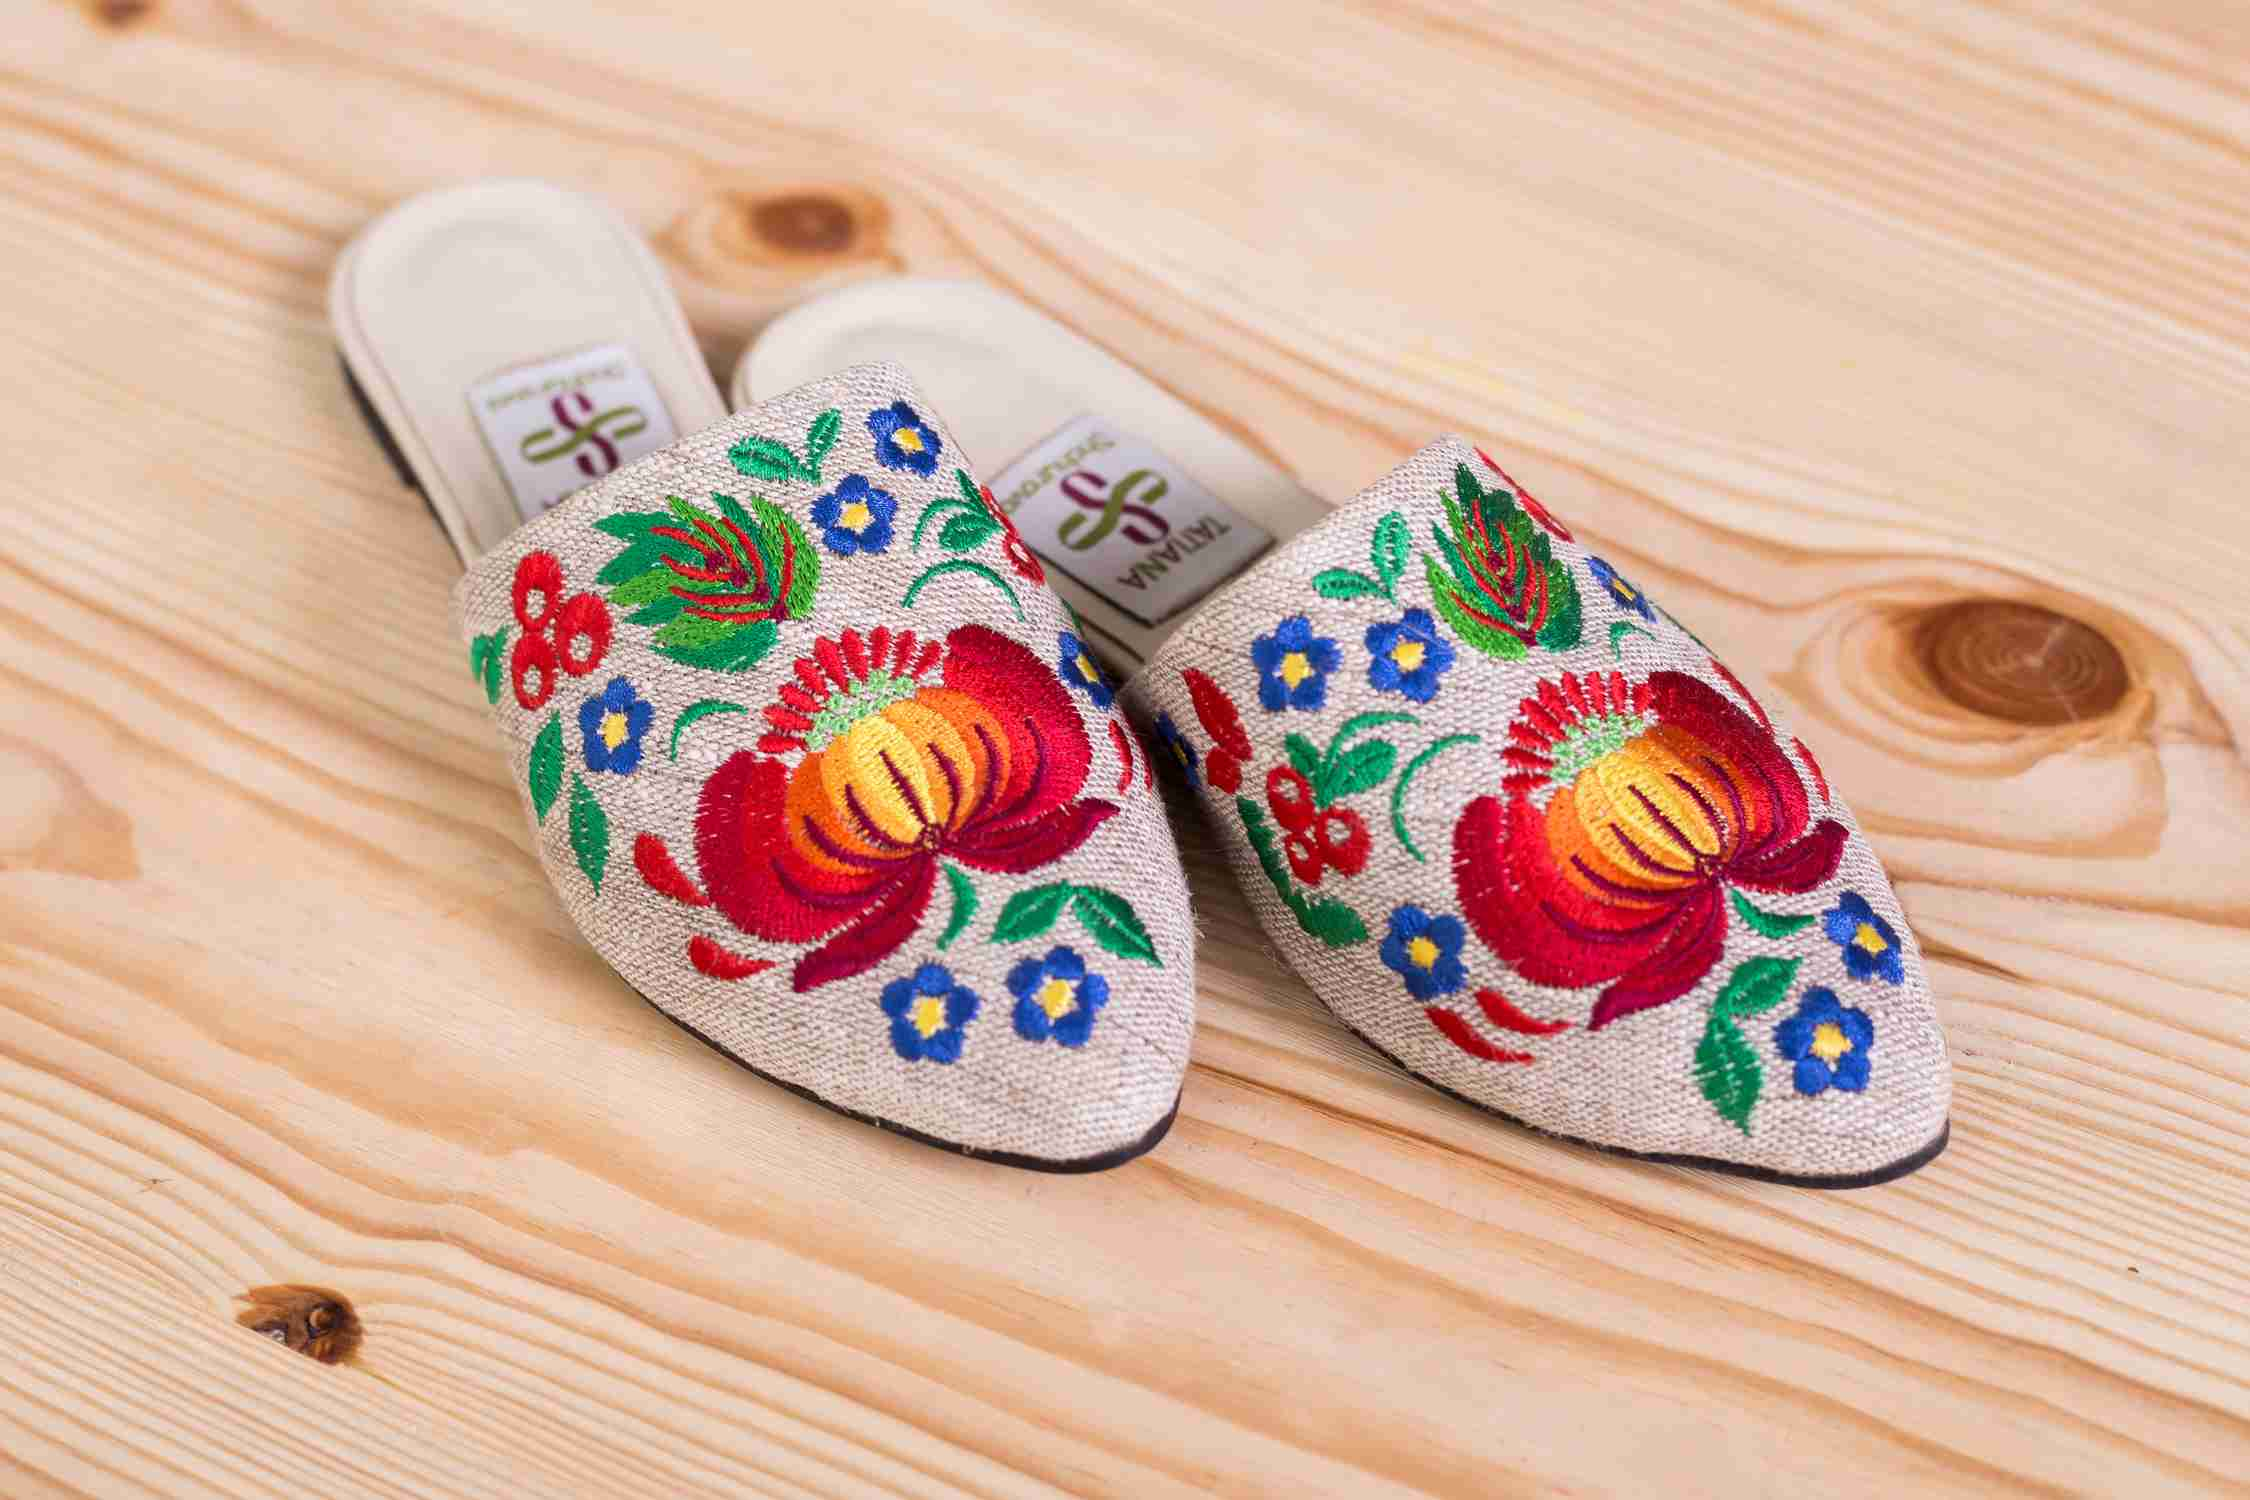 shoes with embroidery to buy ukraine